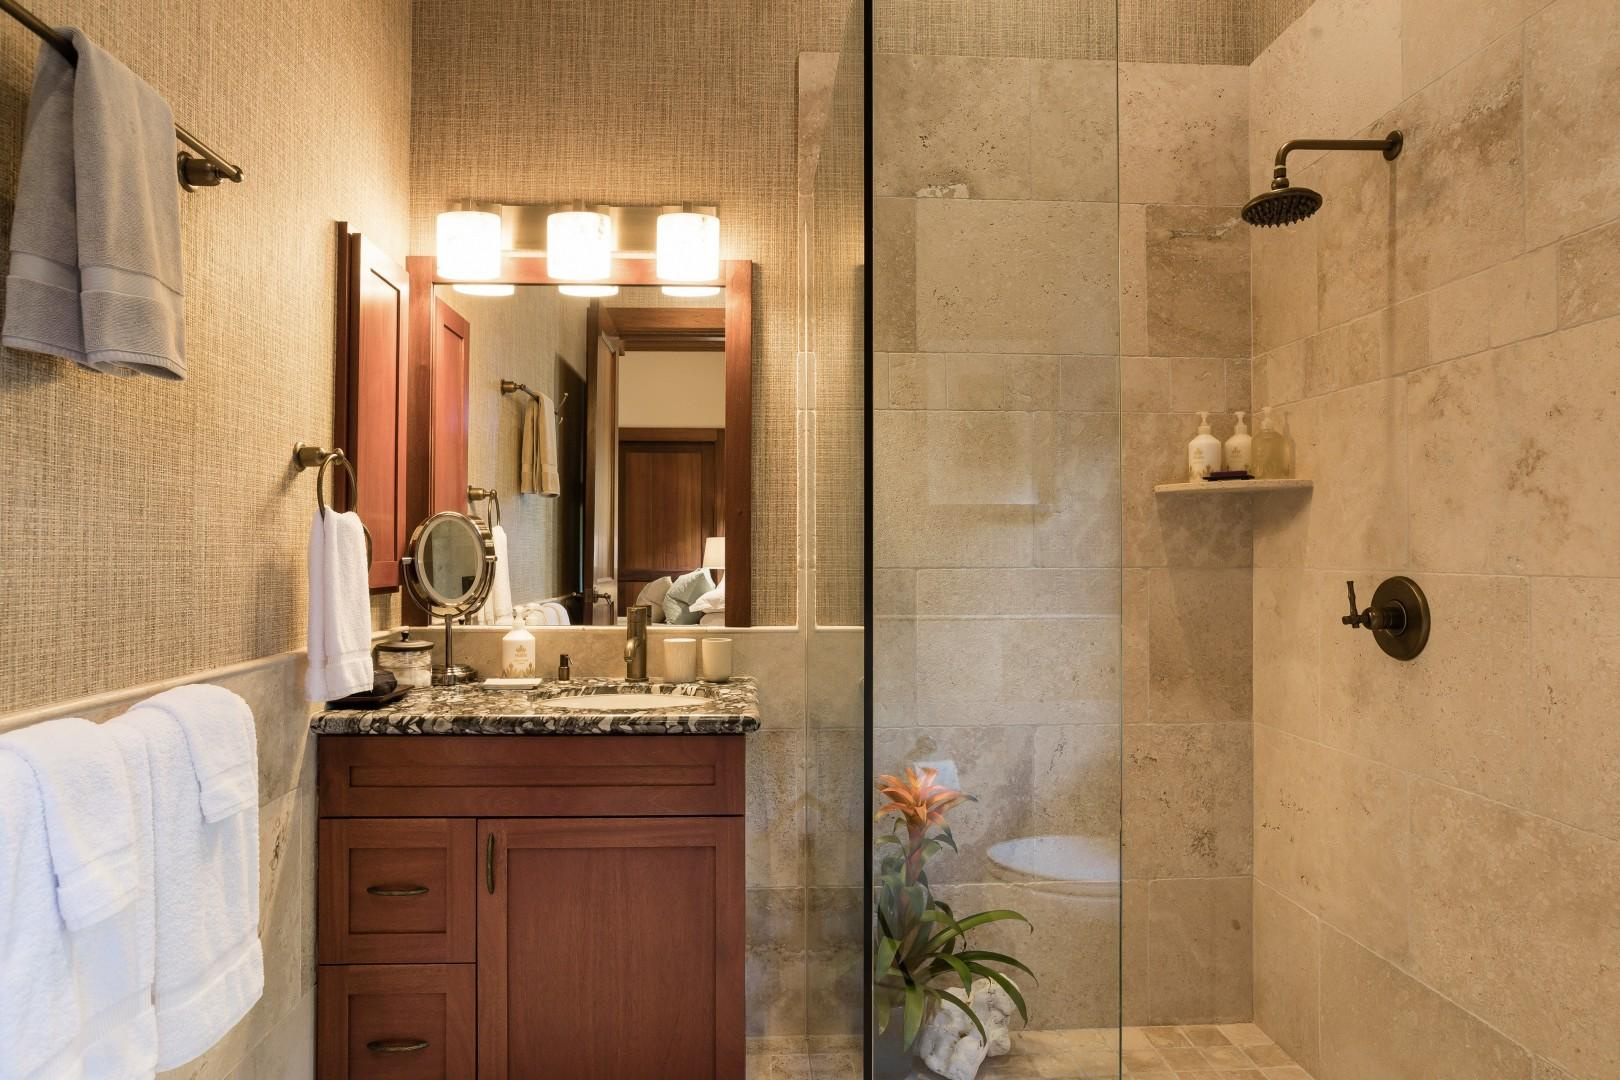 Third bedroom suite's full bath with walk-in shower and granite countertops.